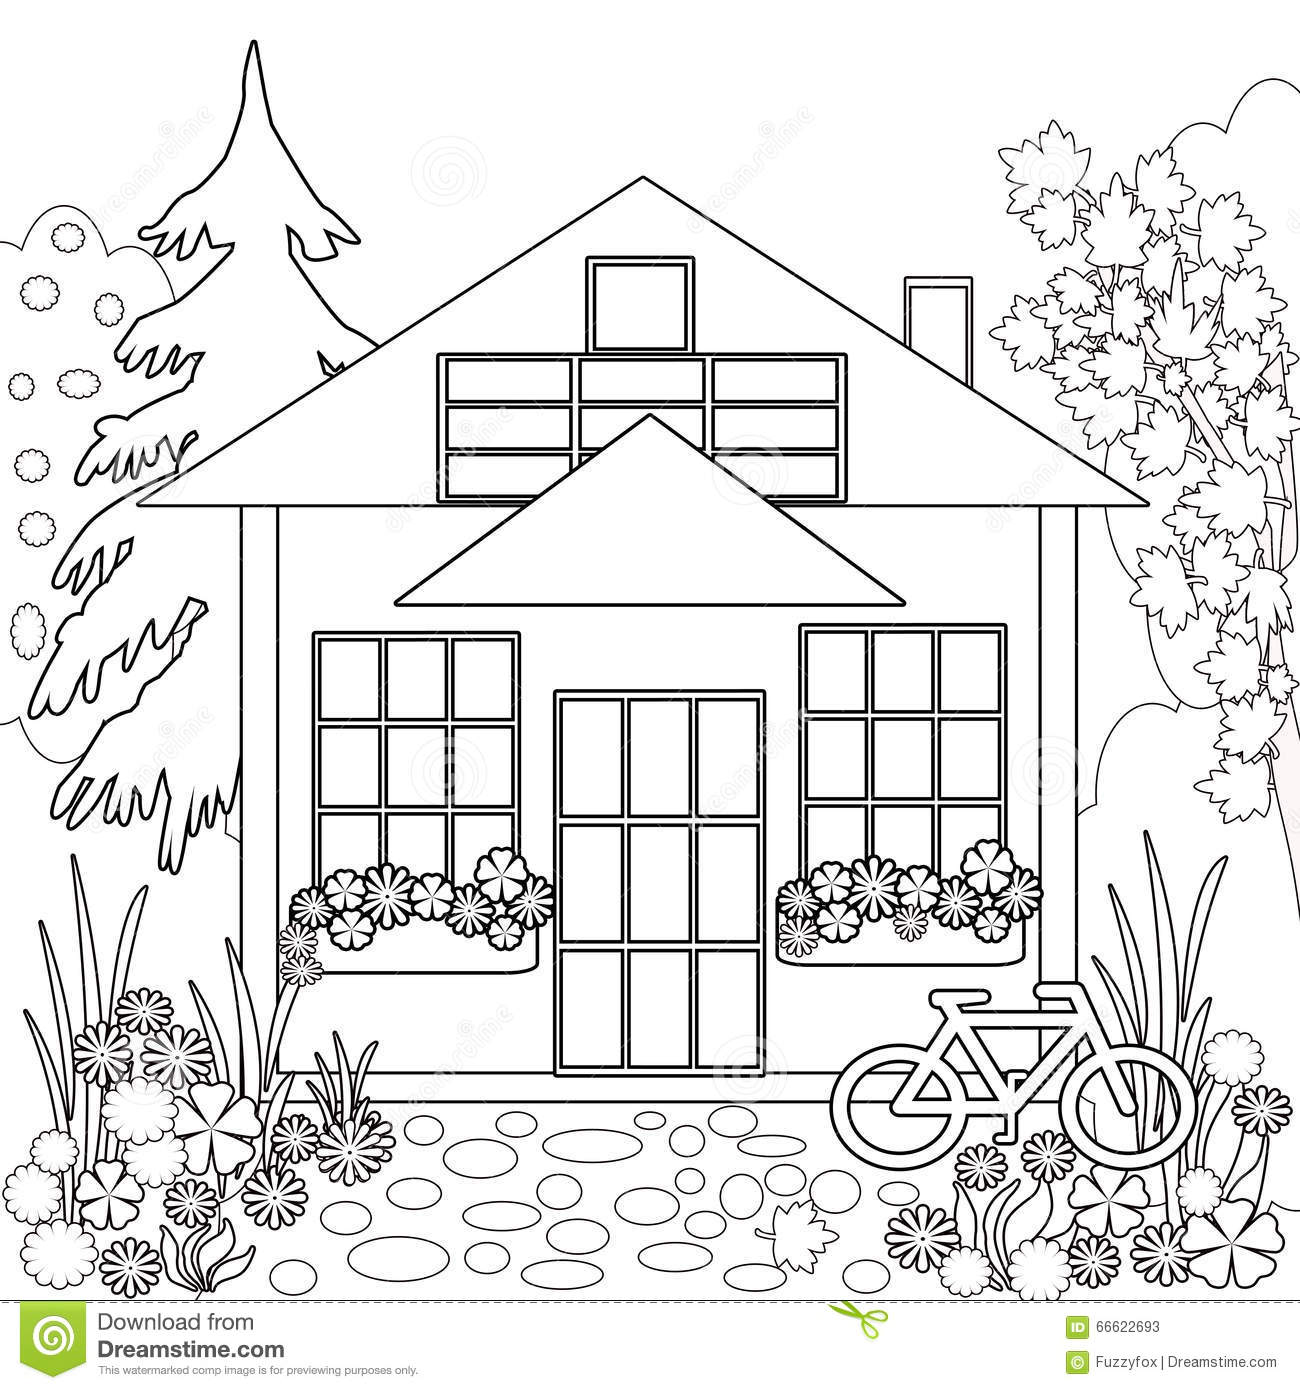 Royalty Free Illustration Download Coloring Page